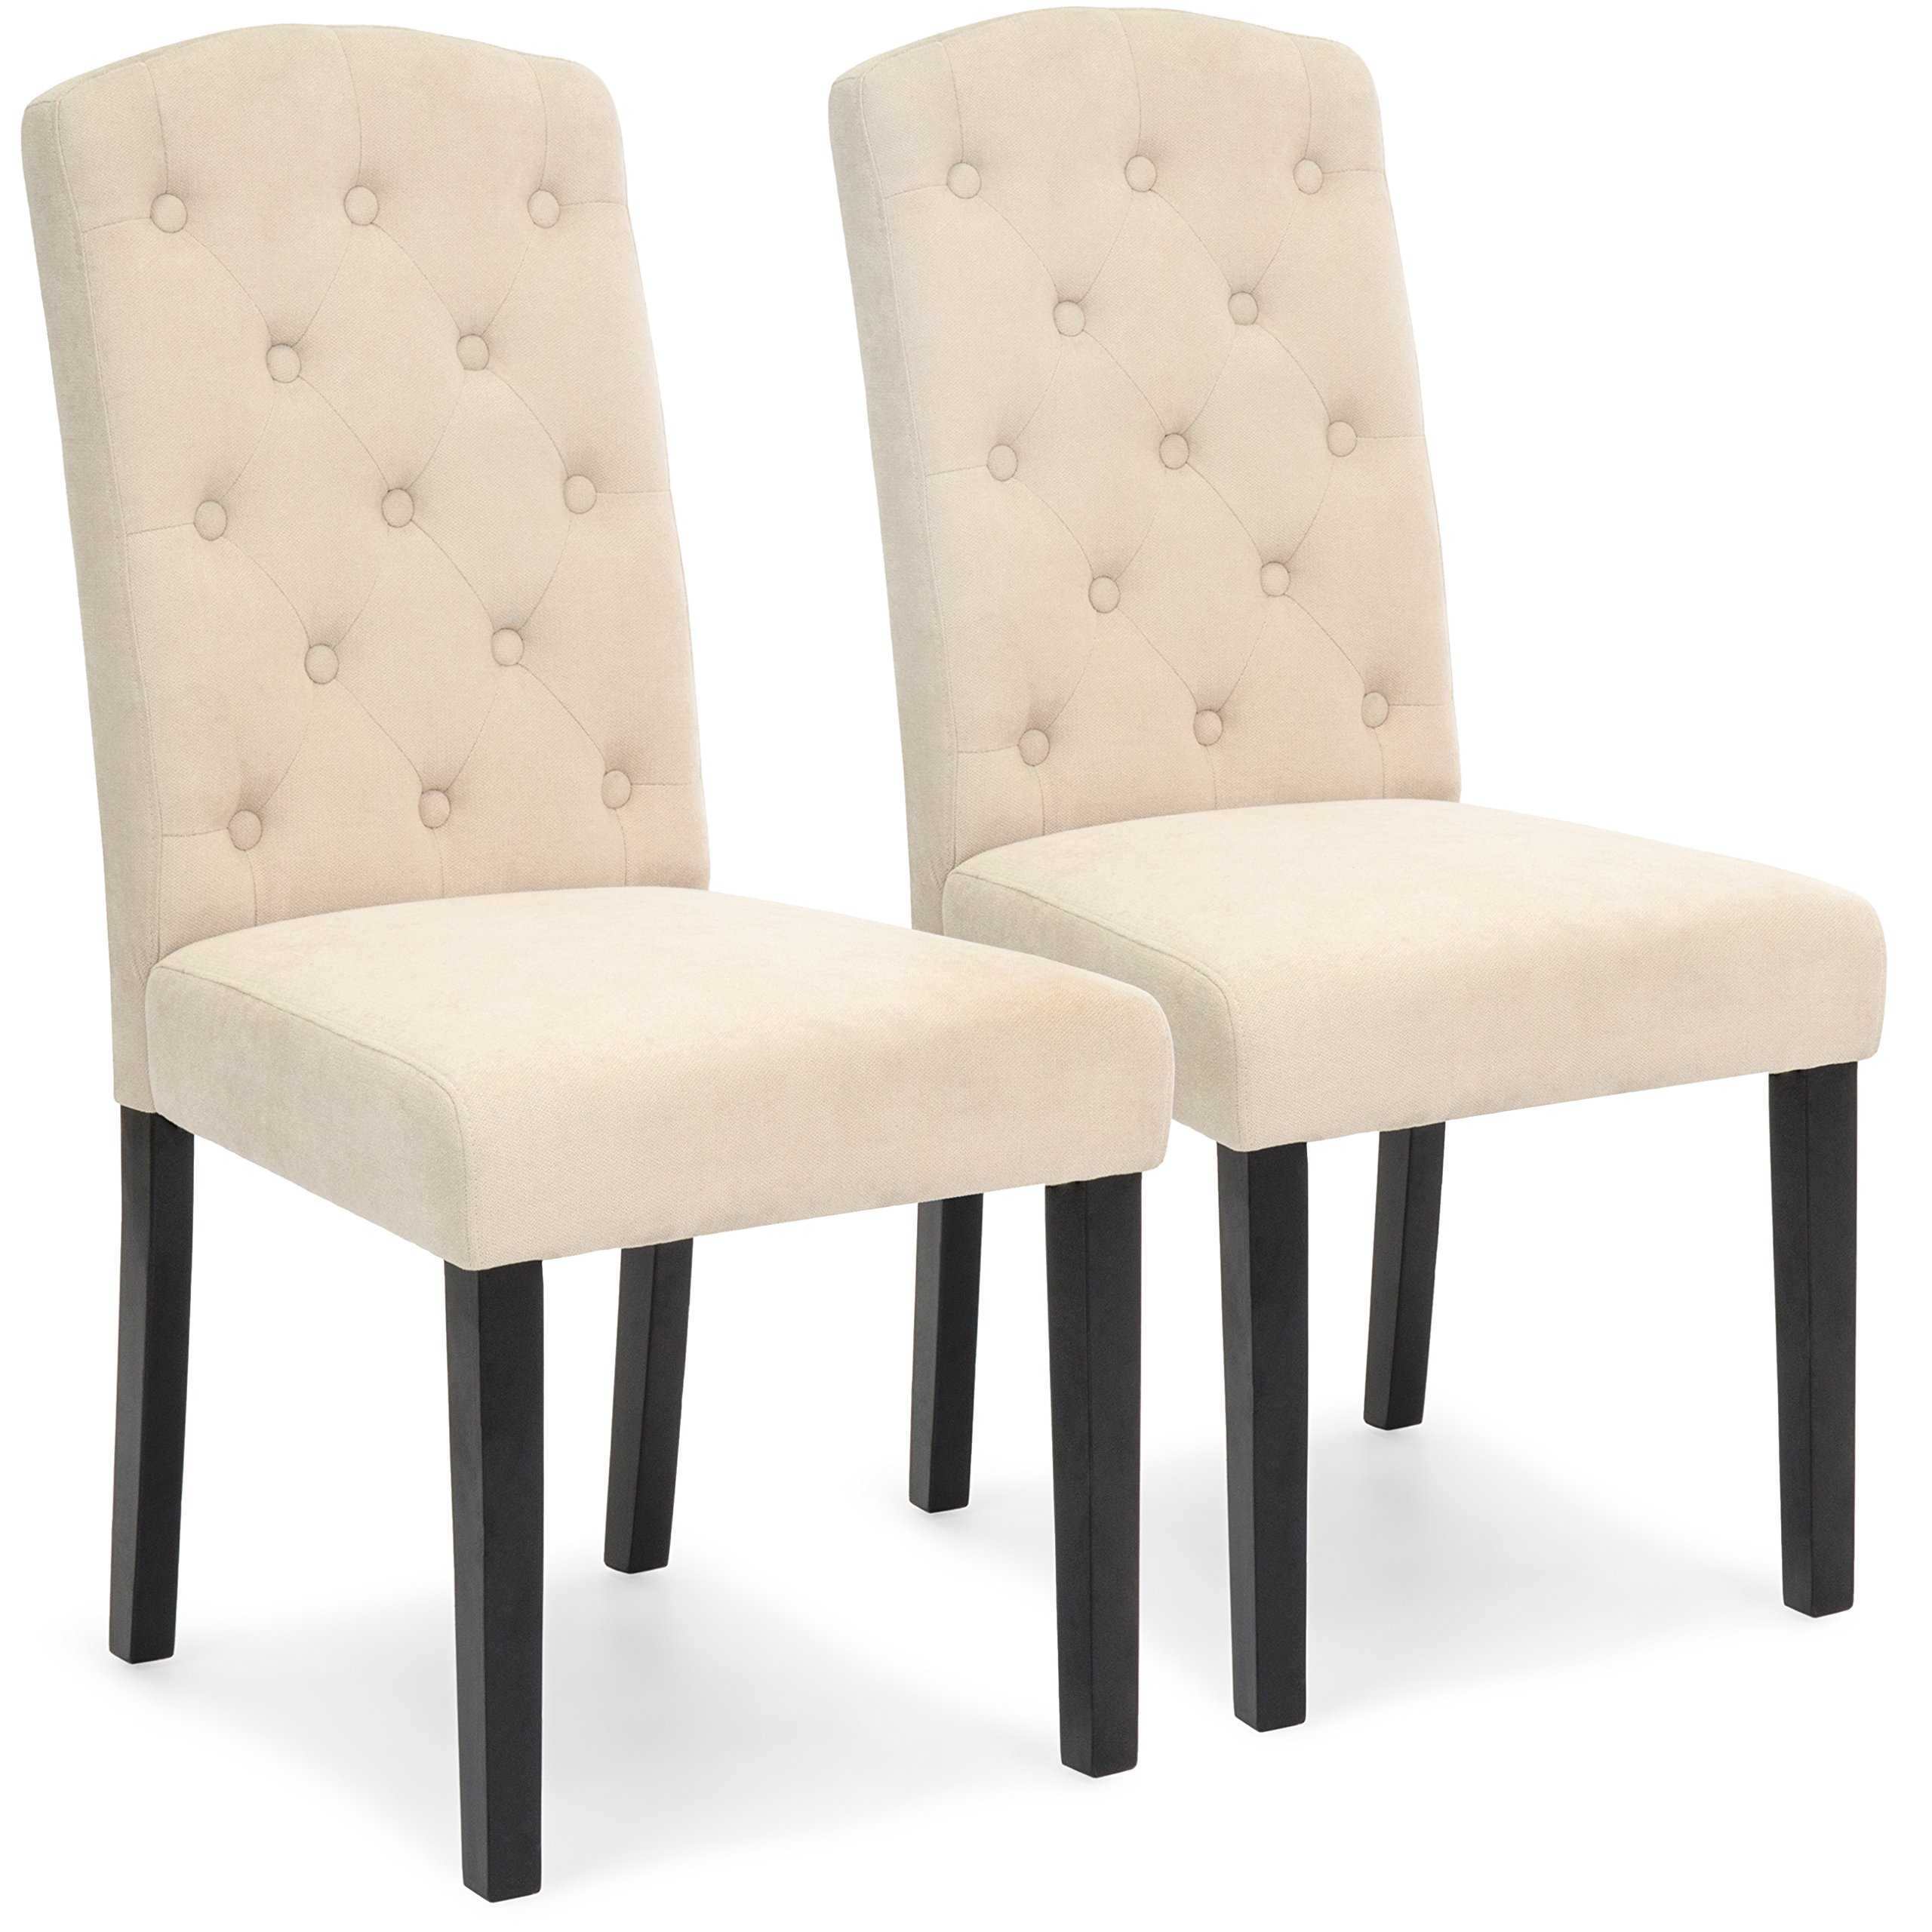 Best Choice Products Set of 2 Tufted Fabric Parsons Dining Chairs Home Furniture for Dining and Living Room - Beige by Best Choice Products